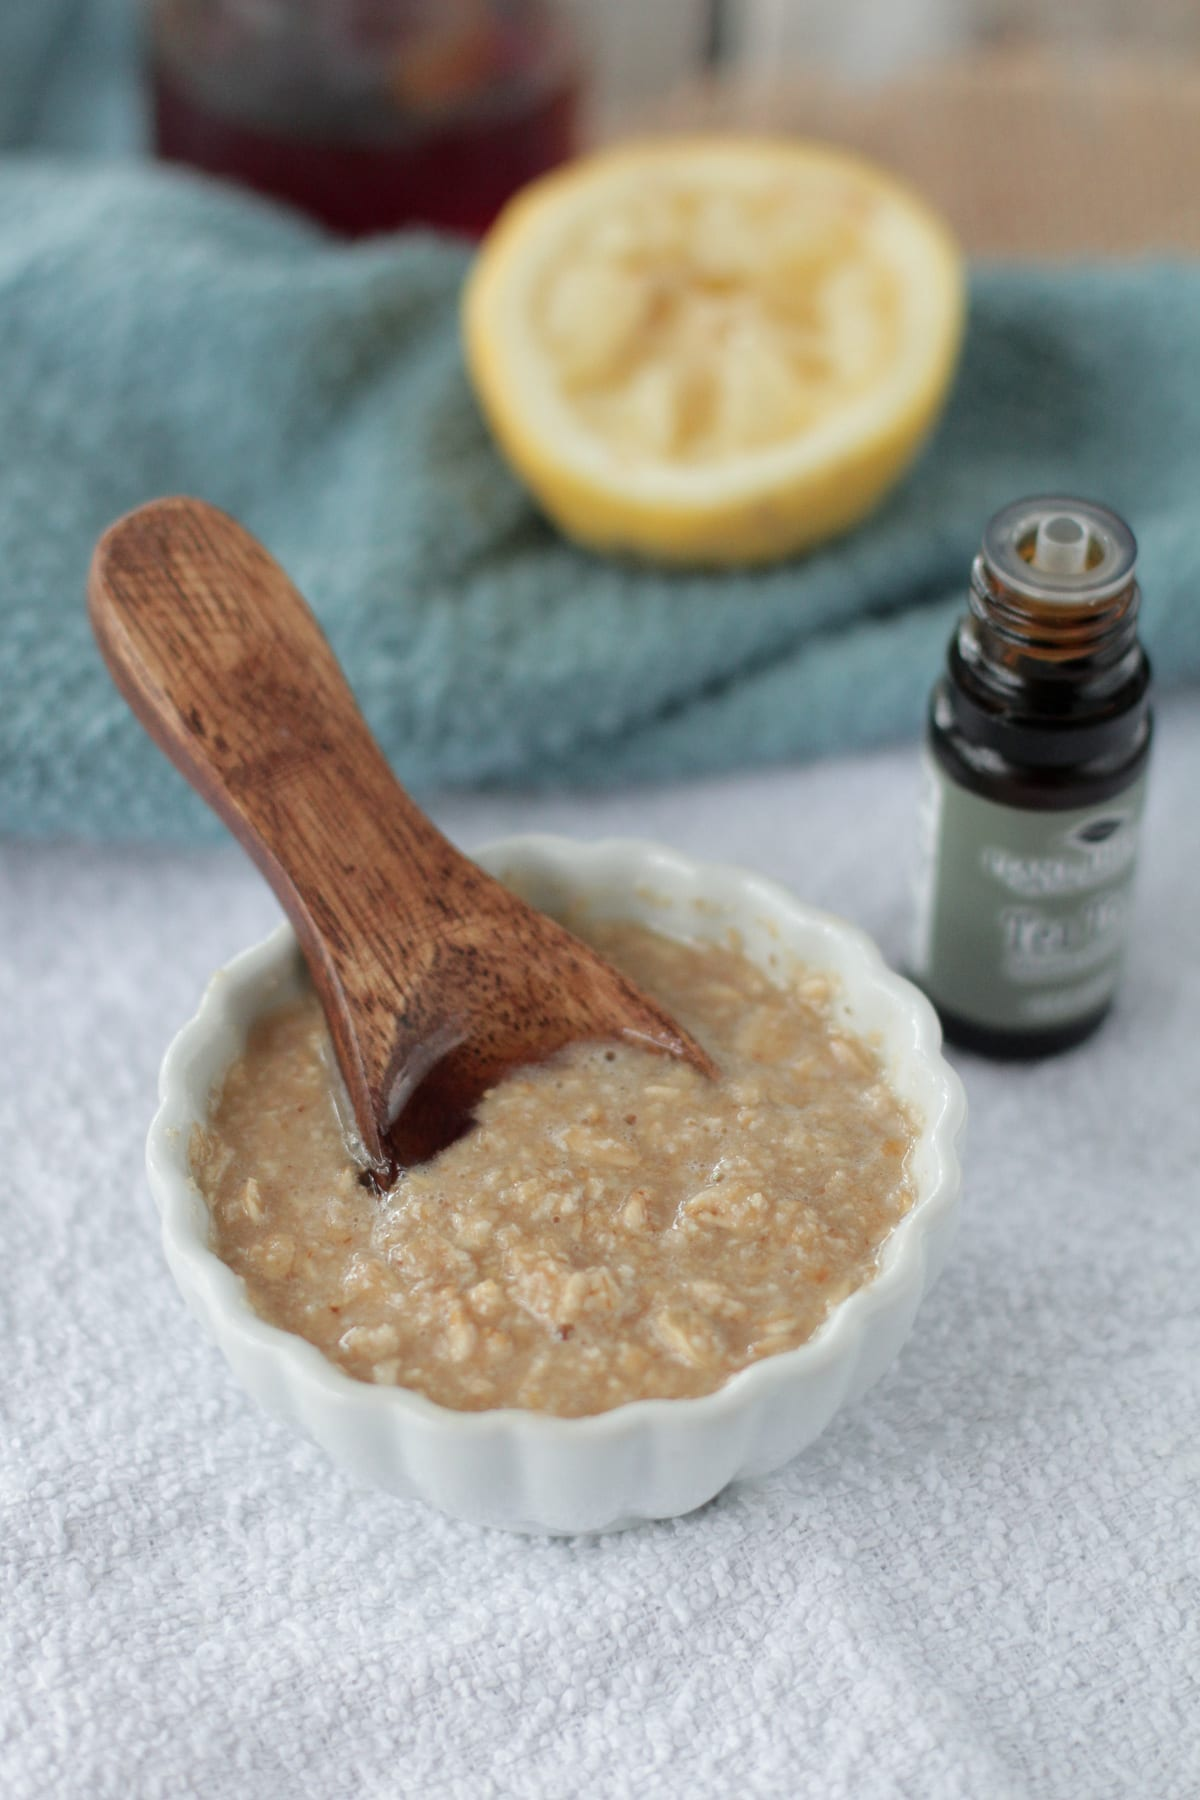 Fight acne naturally! This mask will reduce scars and fight-off unwanted pimples and blackheads for glowing skin! Homemade Honey Oatmeal Acne Mask